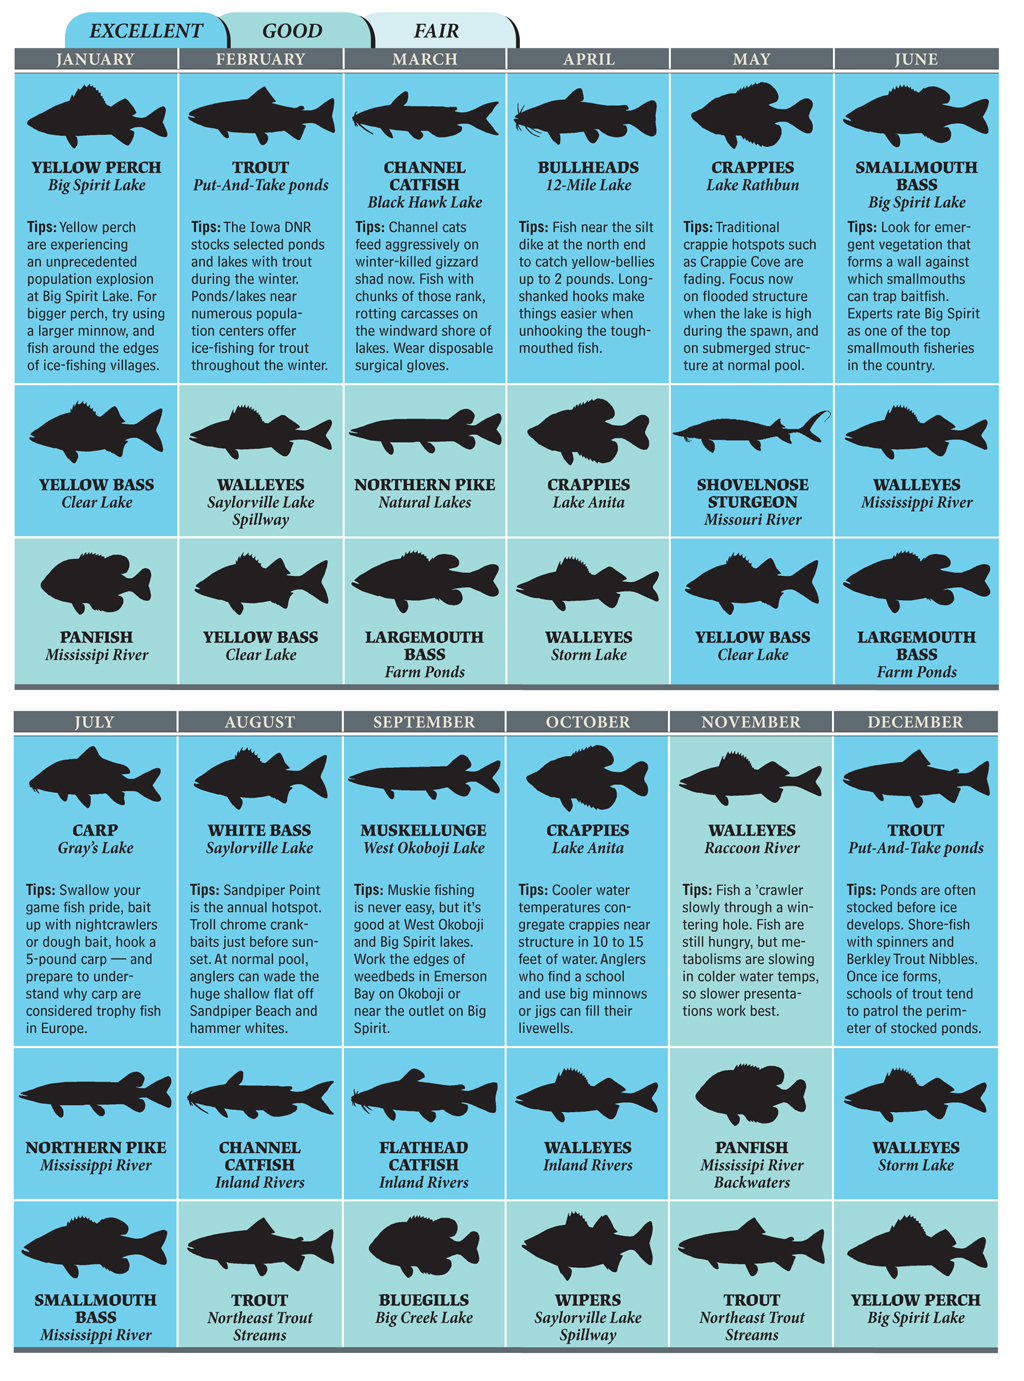 Best Bets for Iowa Fishing in 2012